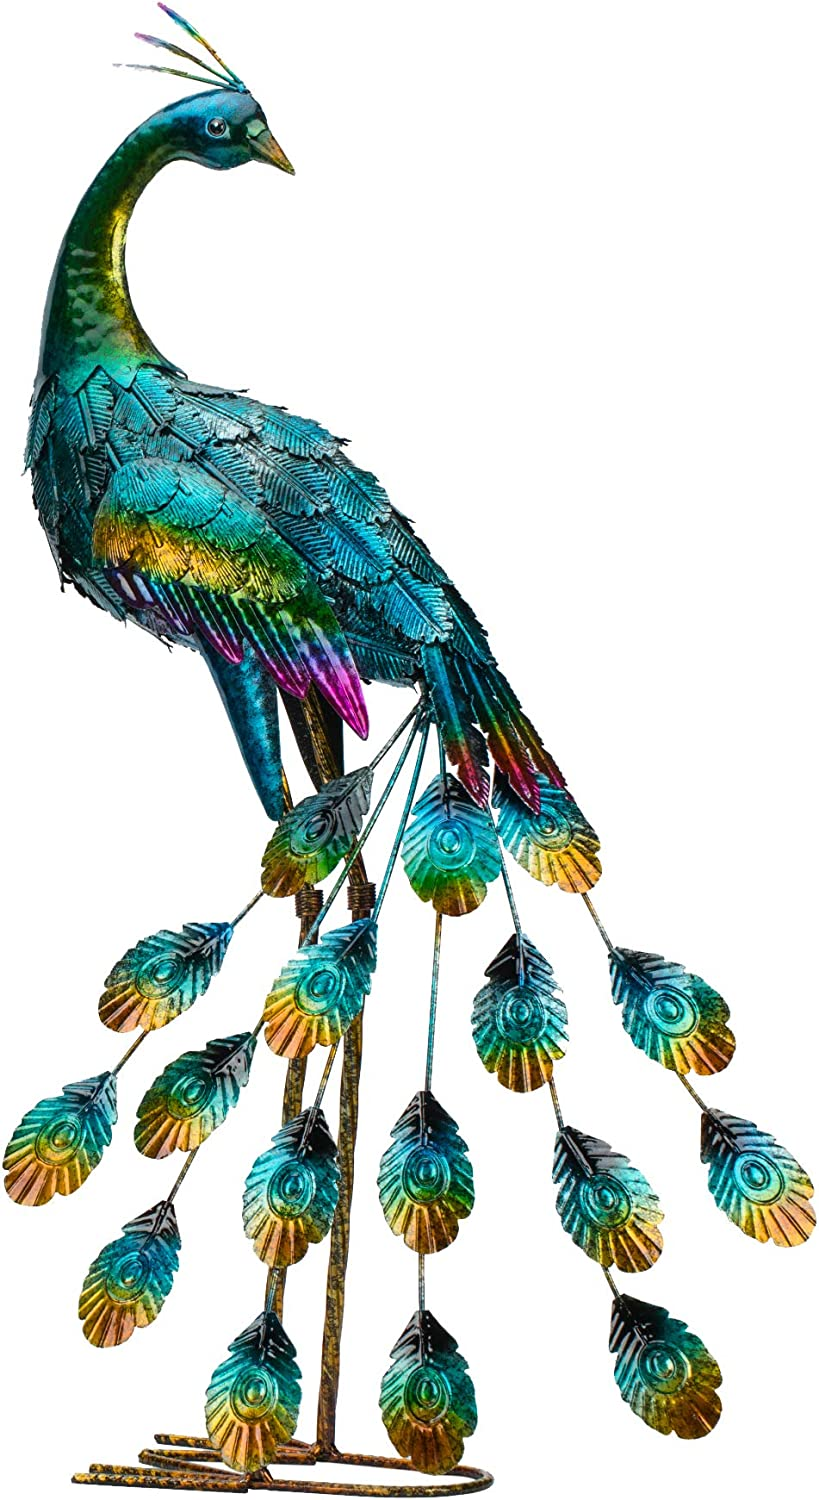 Kircust Metal Peacock Garden Statue and Sculpture, Peacocks Yard Art Lawn Ornament for Outdoor Backyard Porch Patio Decor(1-Piece)